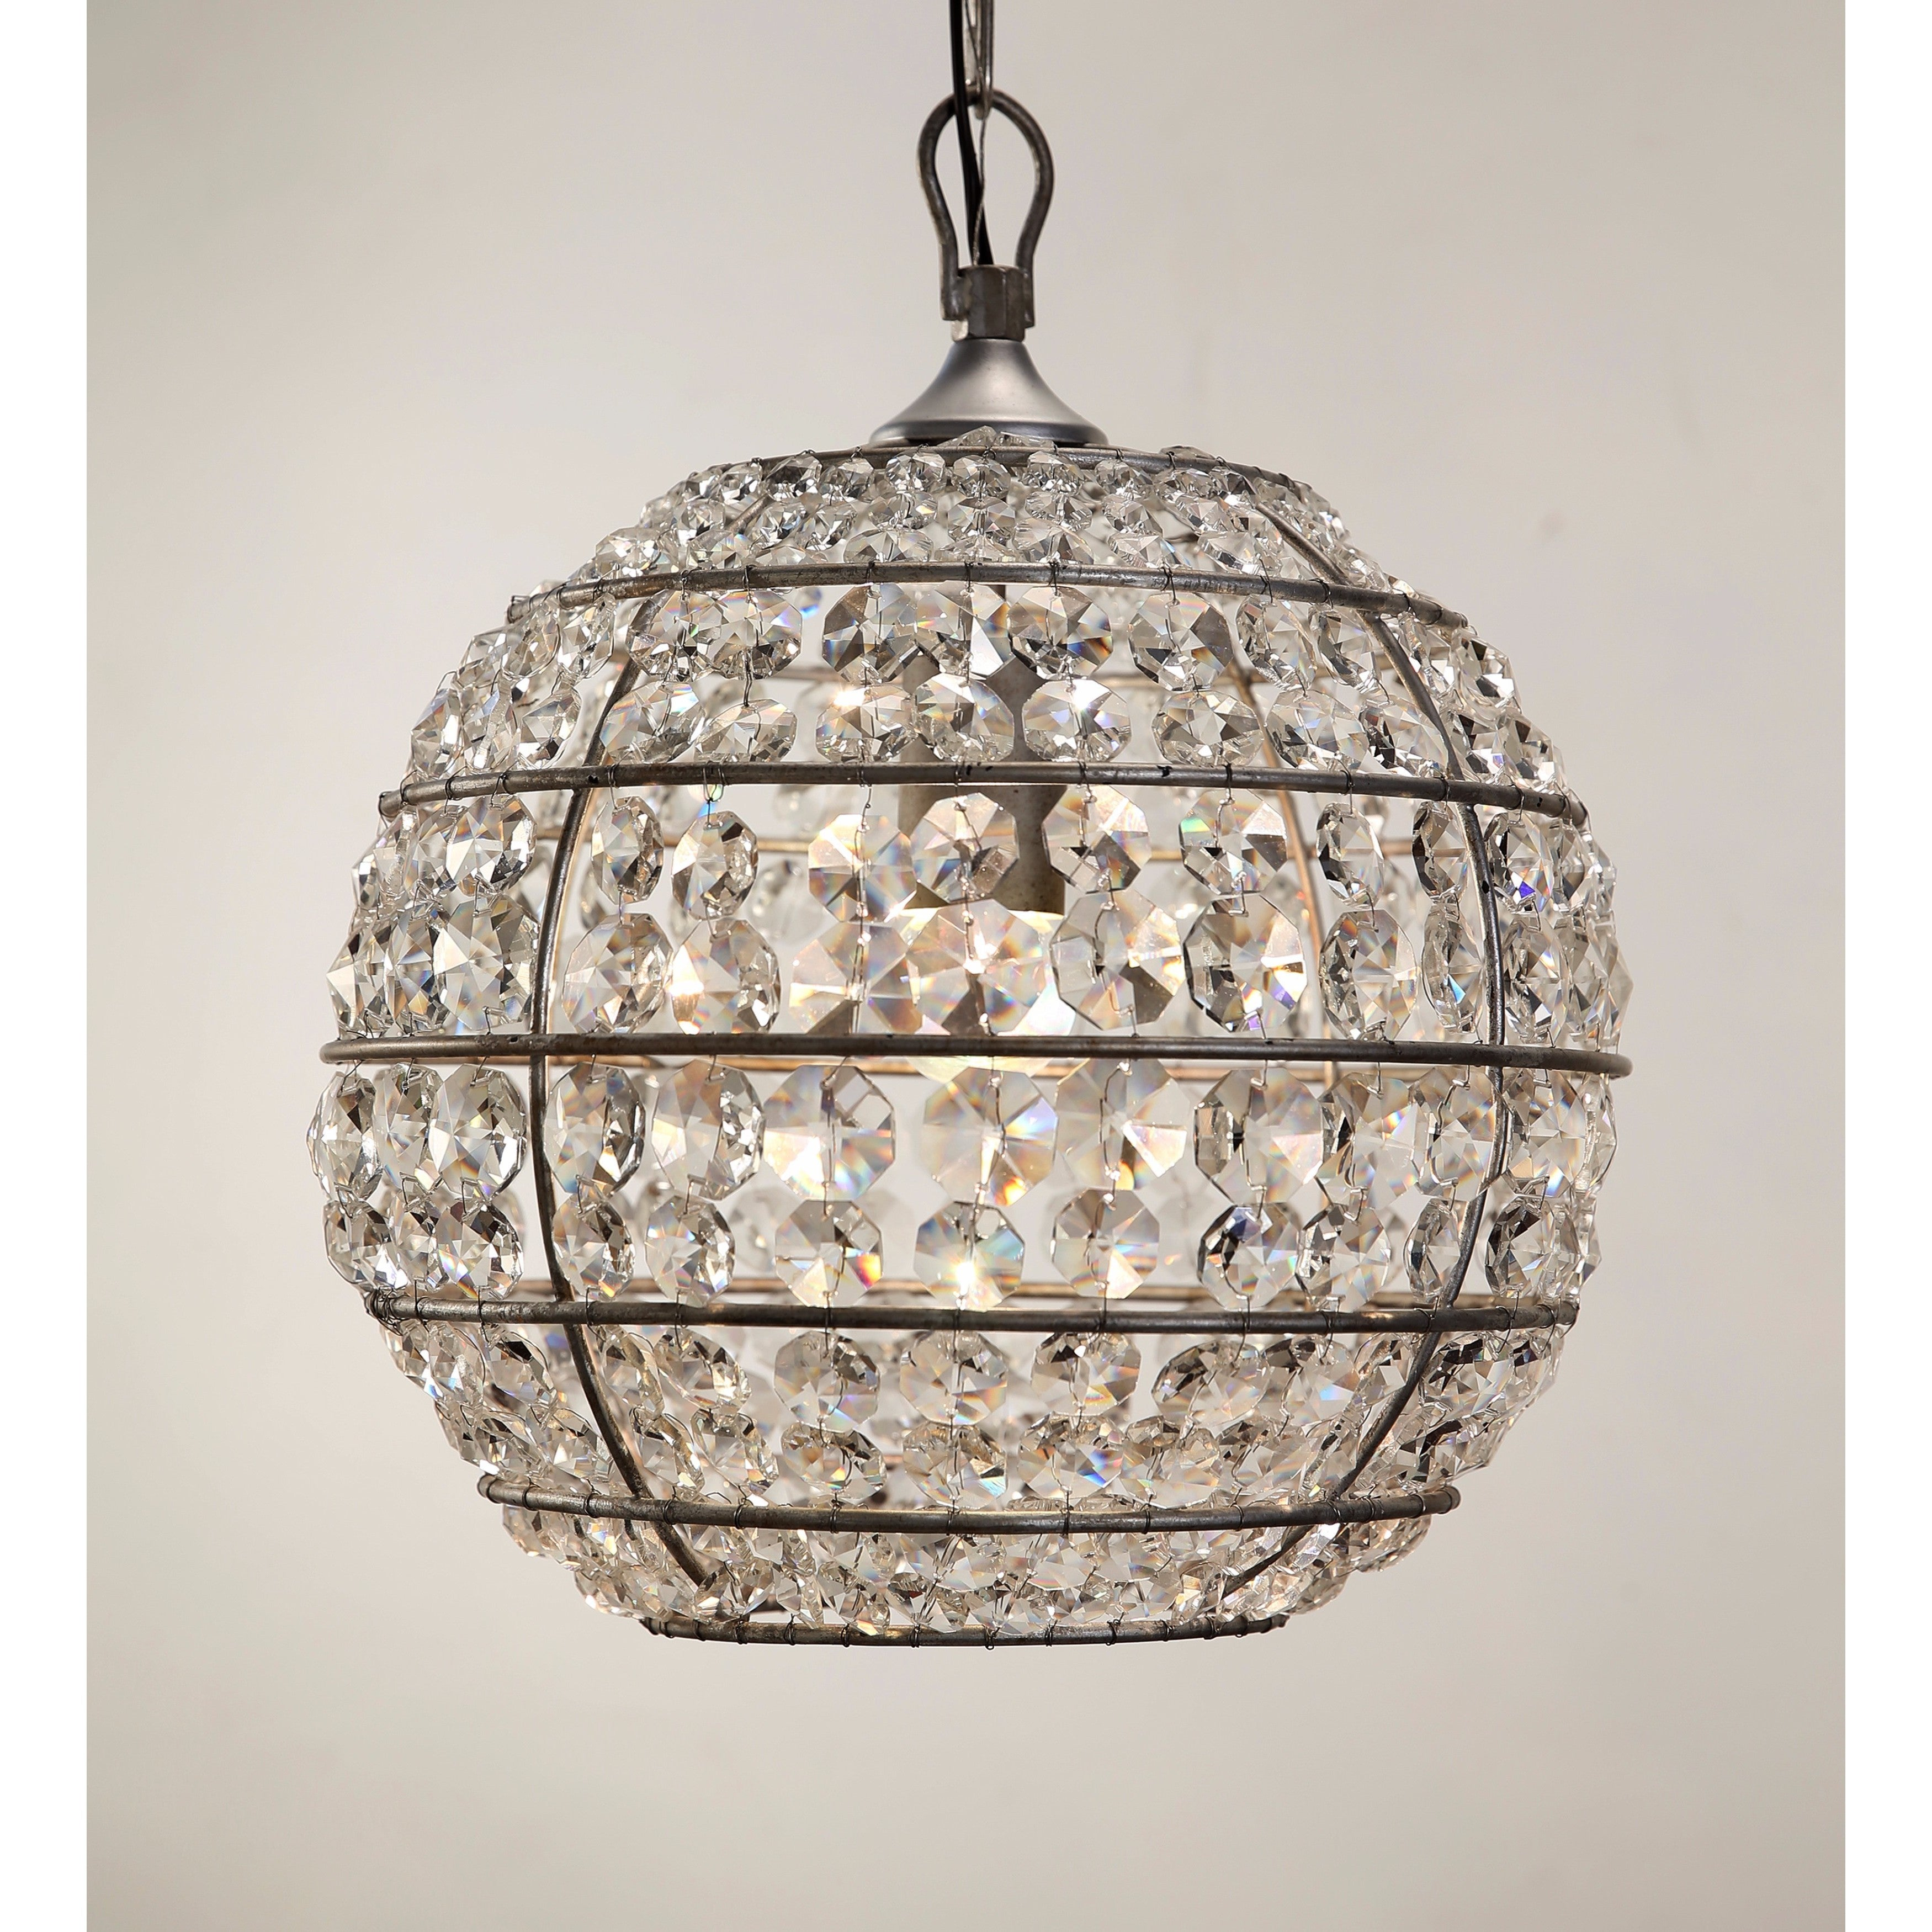 Abbyson Iron and Crystal Globe Chandelier Free Shipping Today